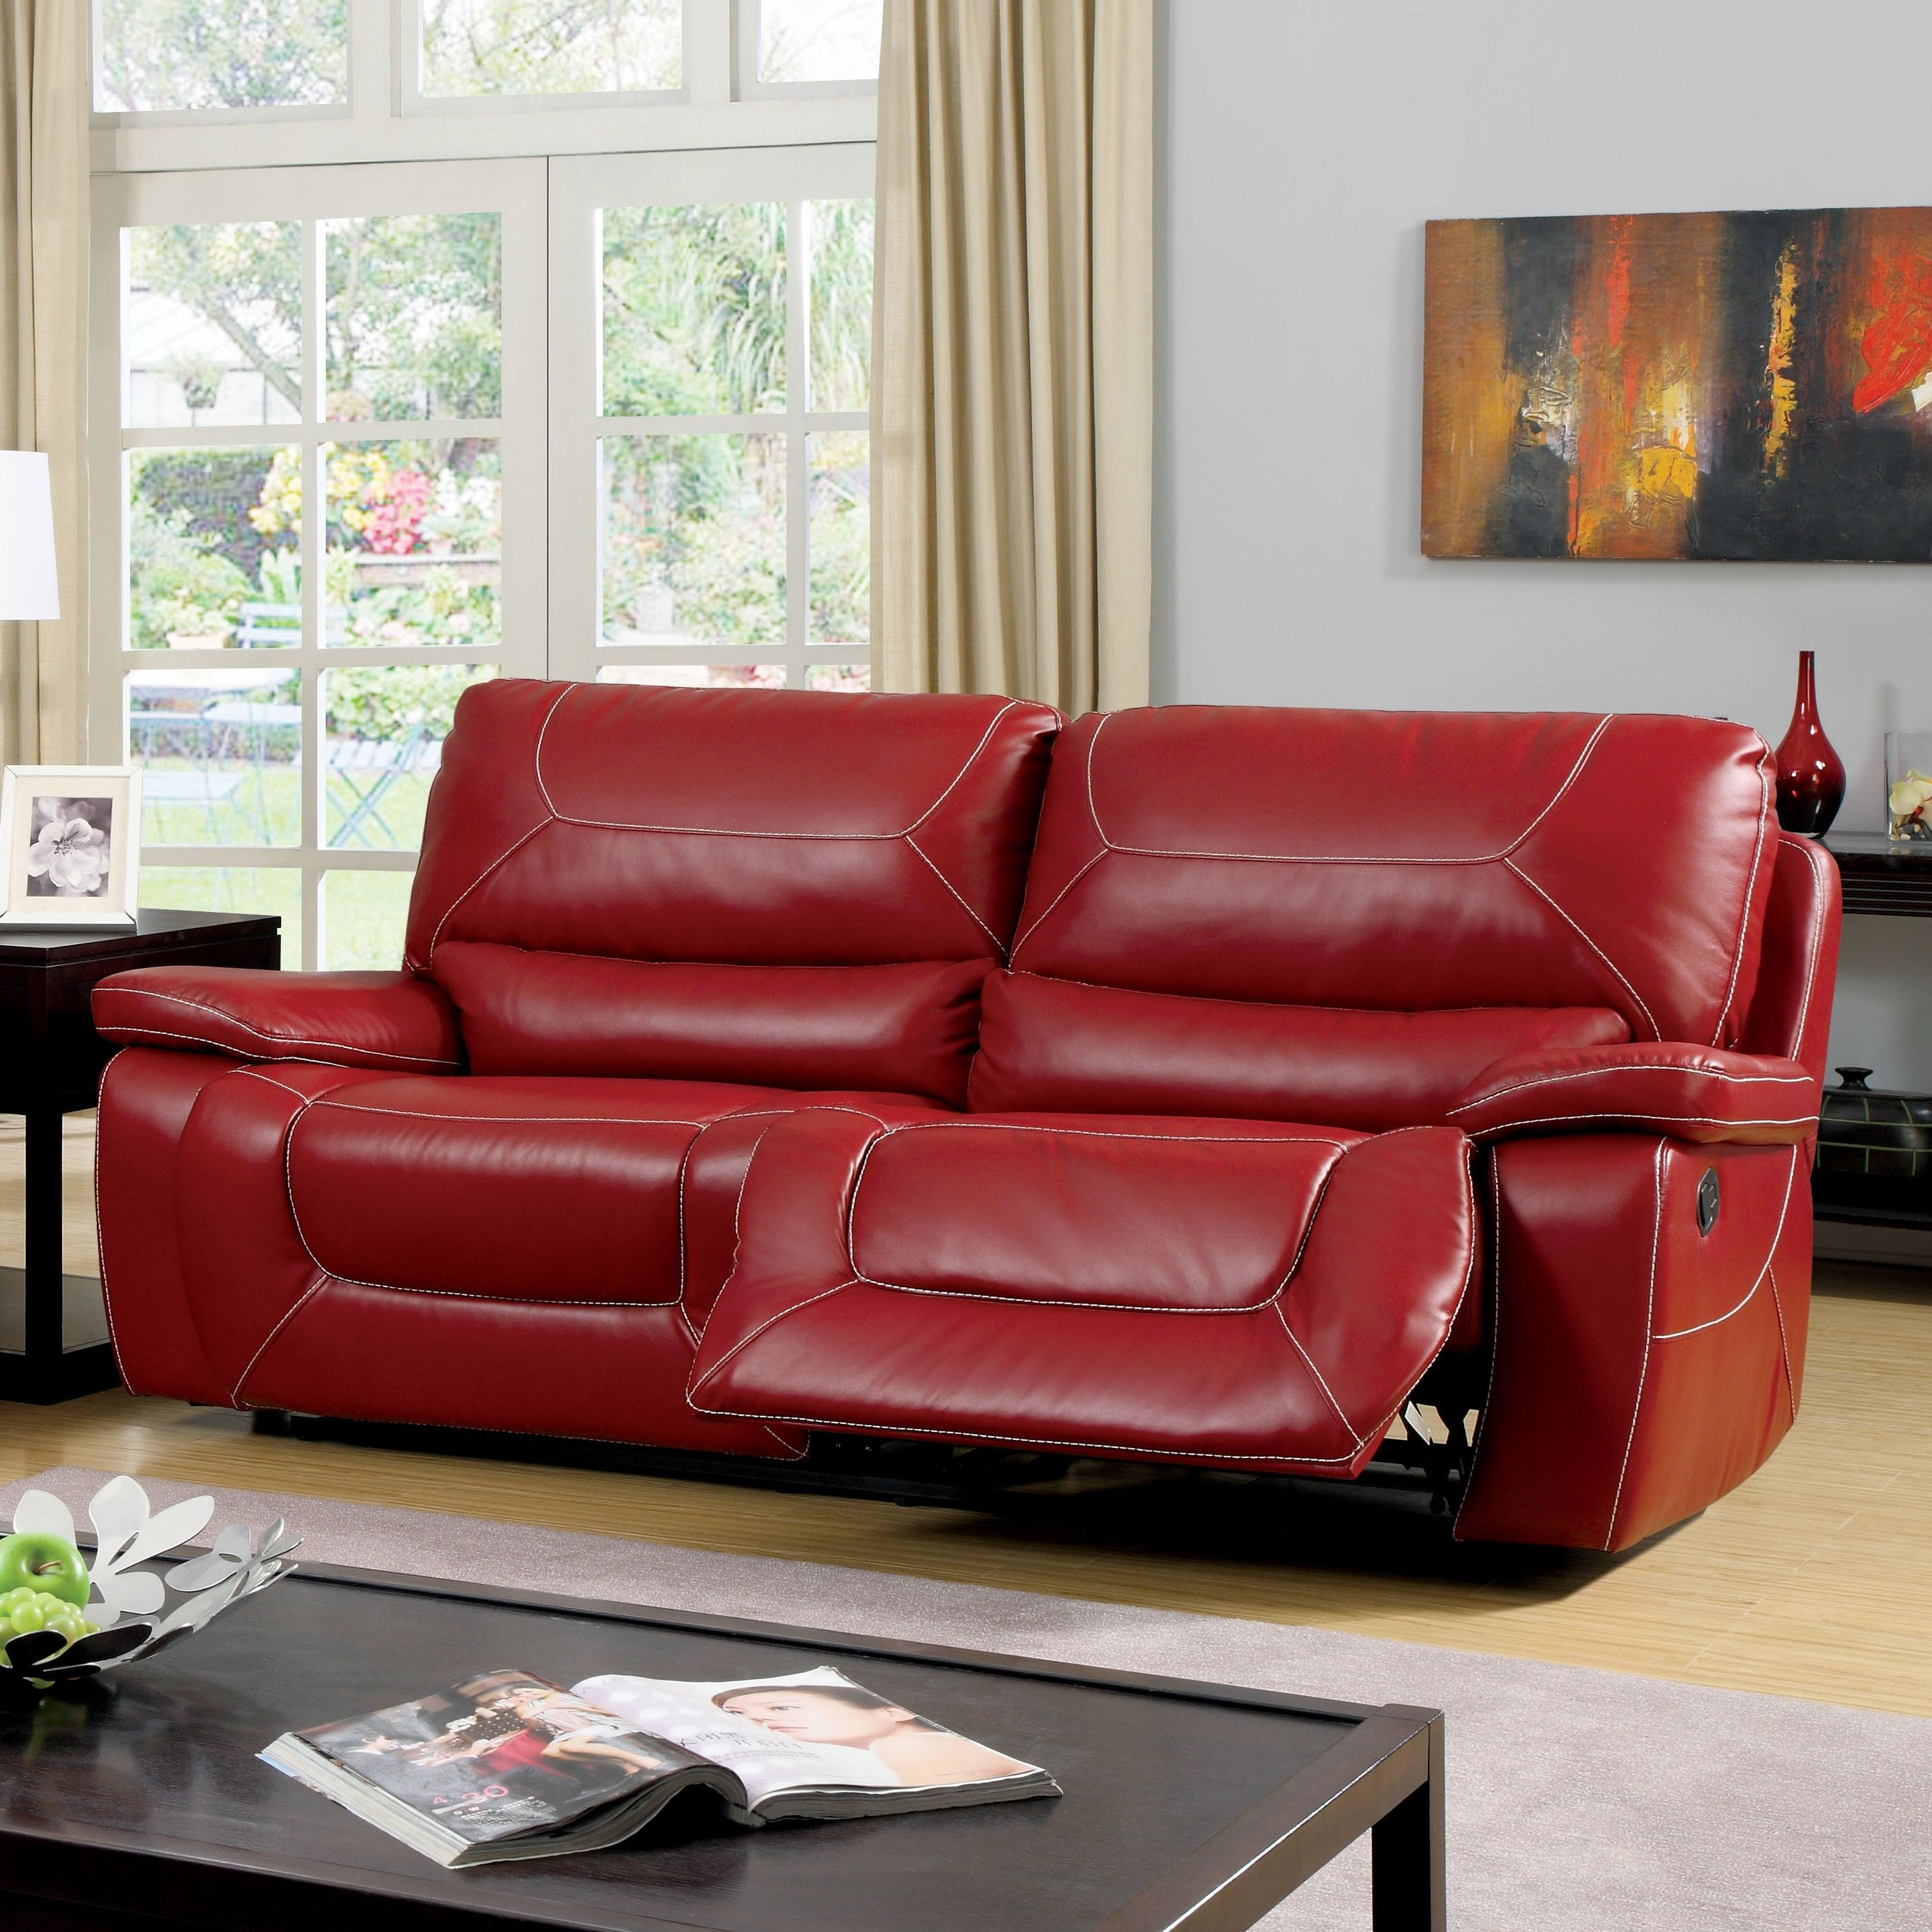 Dormont Reclining Sofa | Reclining Sofa, Living Rooms And Room Pertaining To Red Leather Reclining Sofas And Loveseats (View 7 of 10)